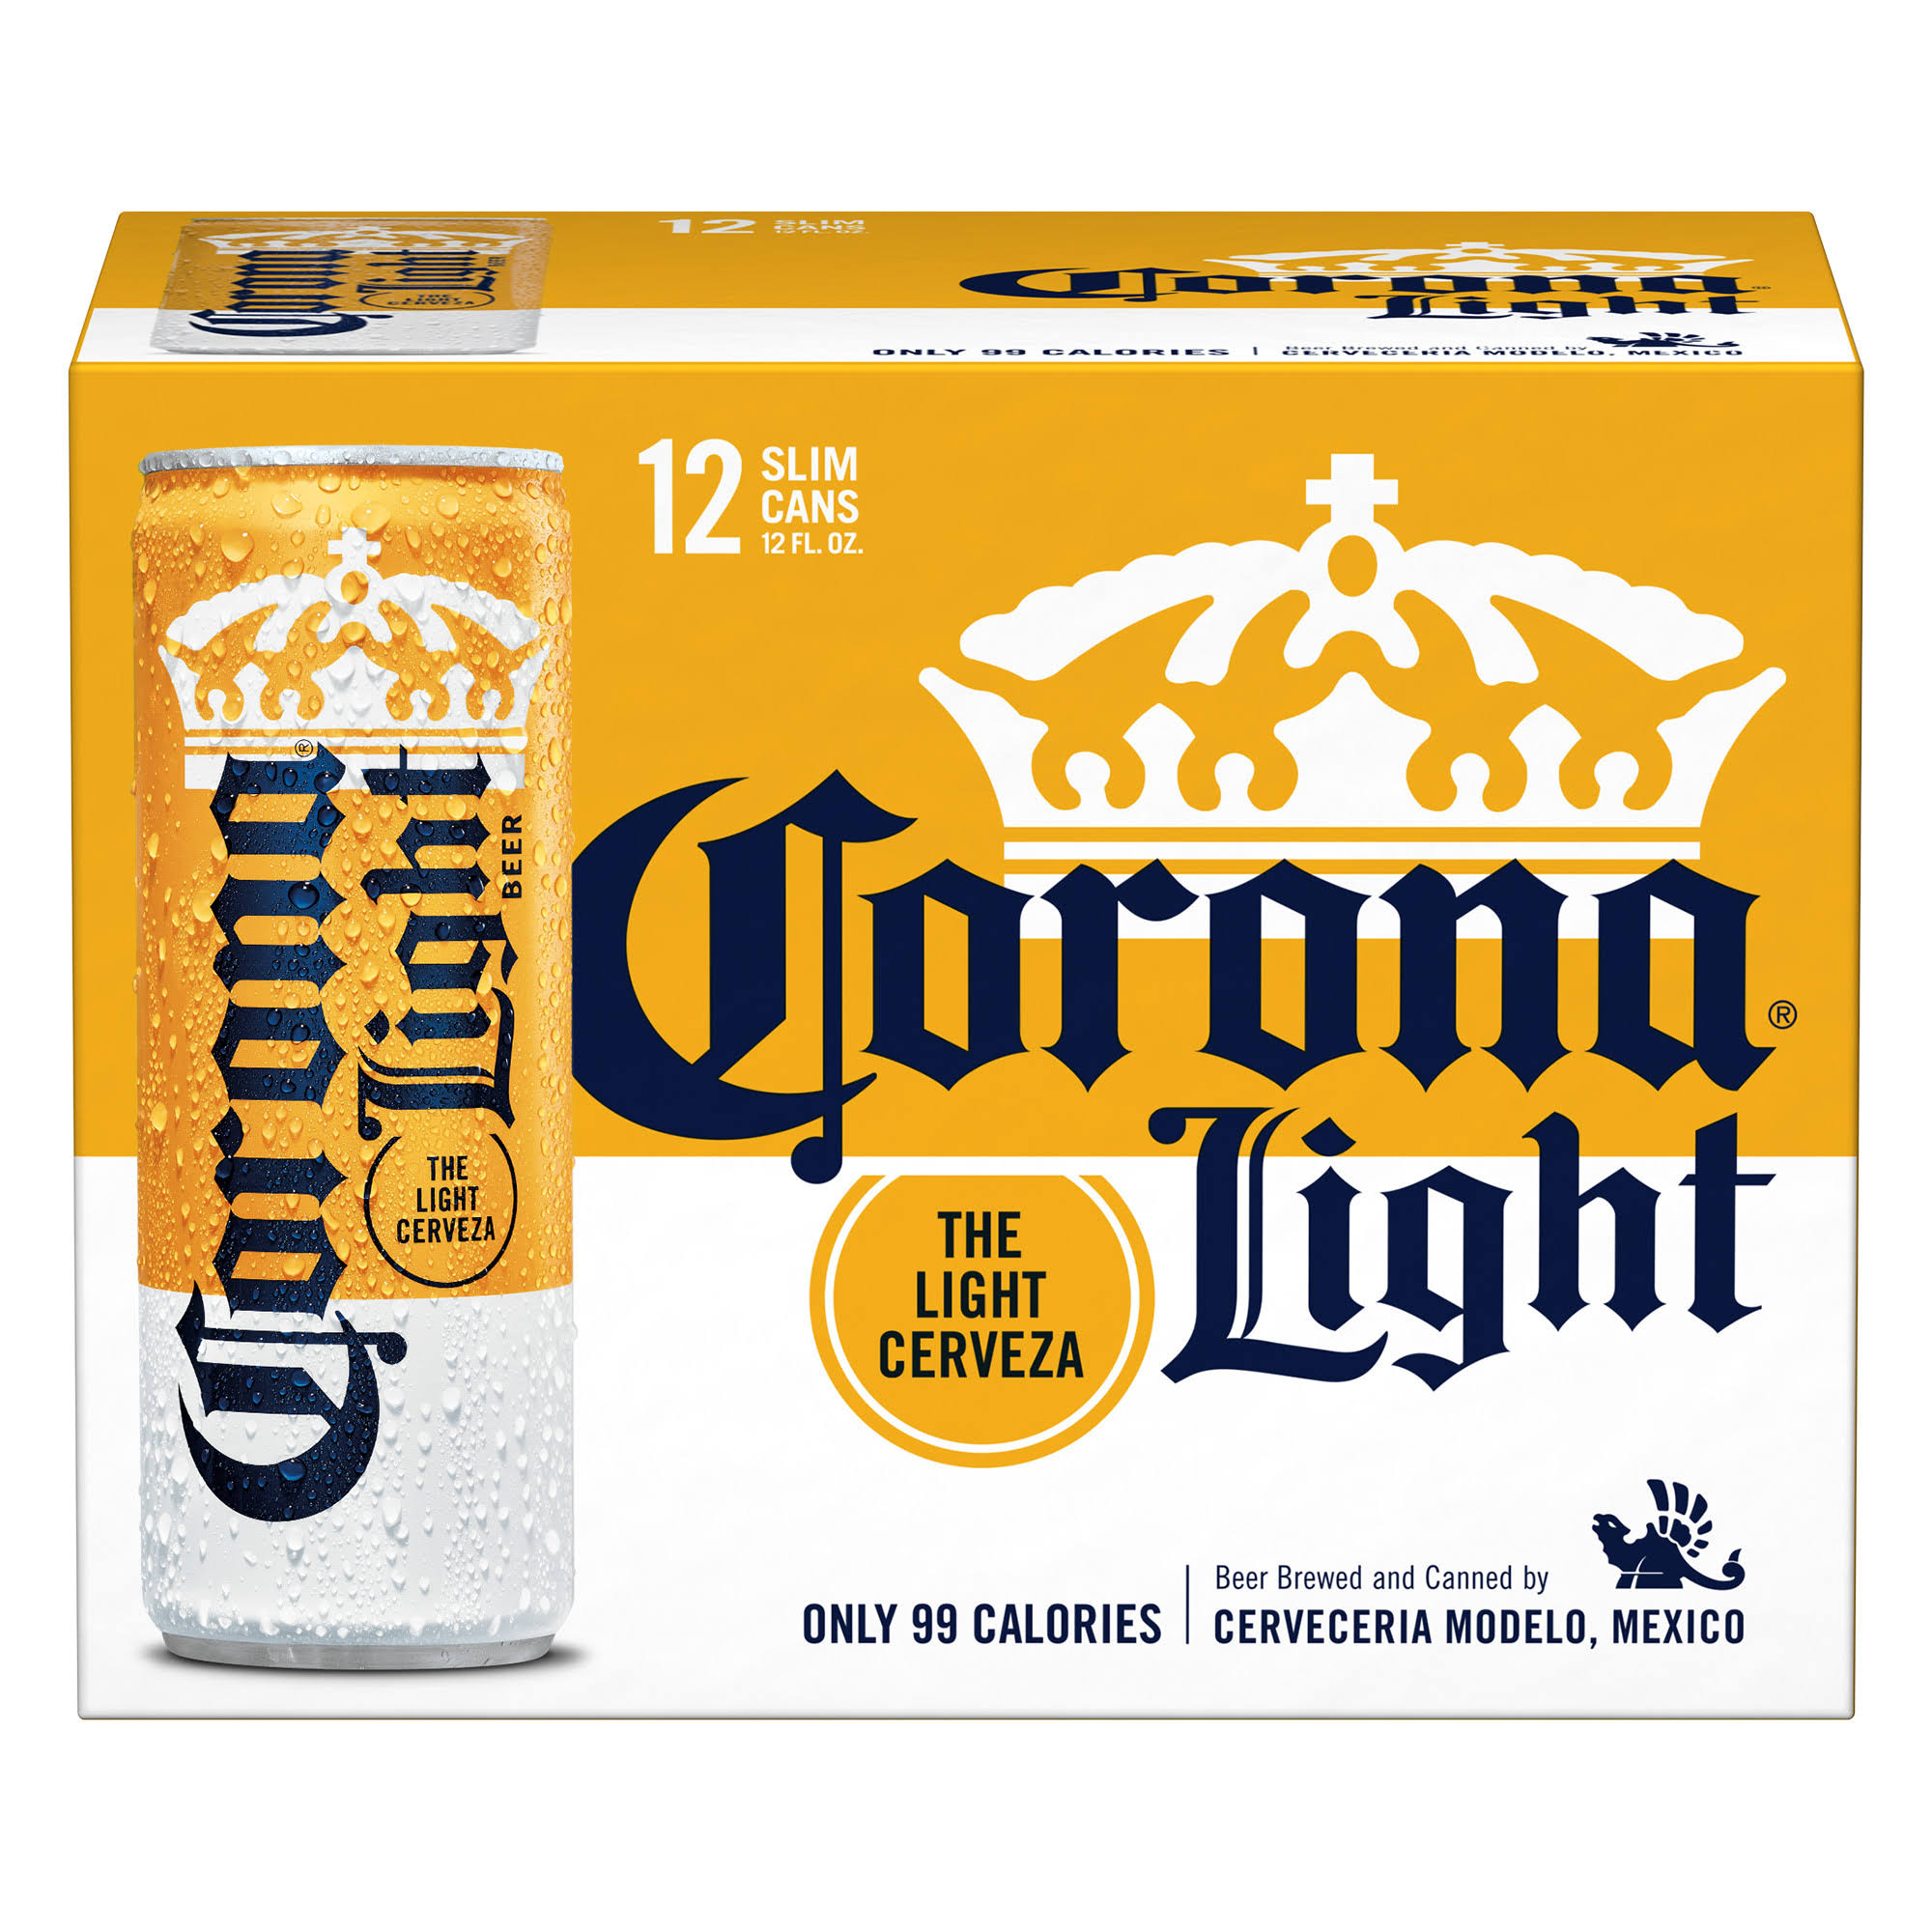 Corona Light Beer, Tall Cans - 12 pack, 12 fl oz cans